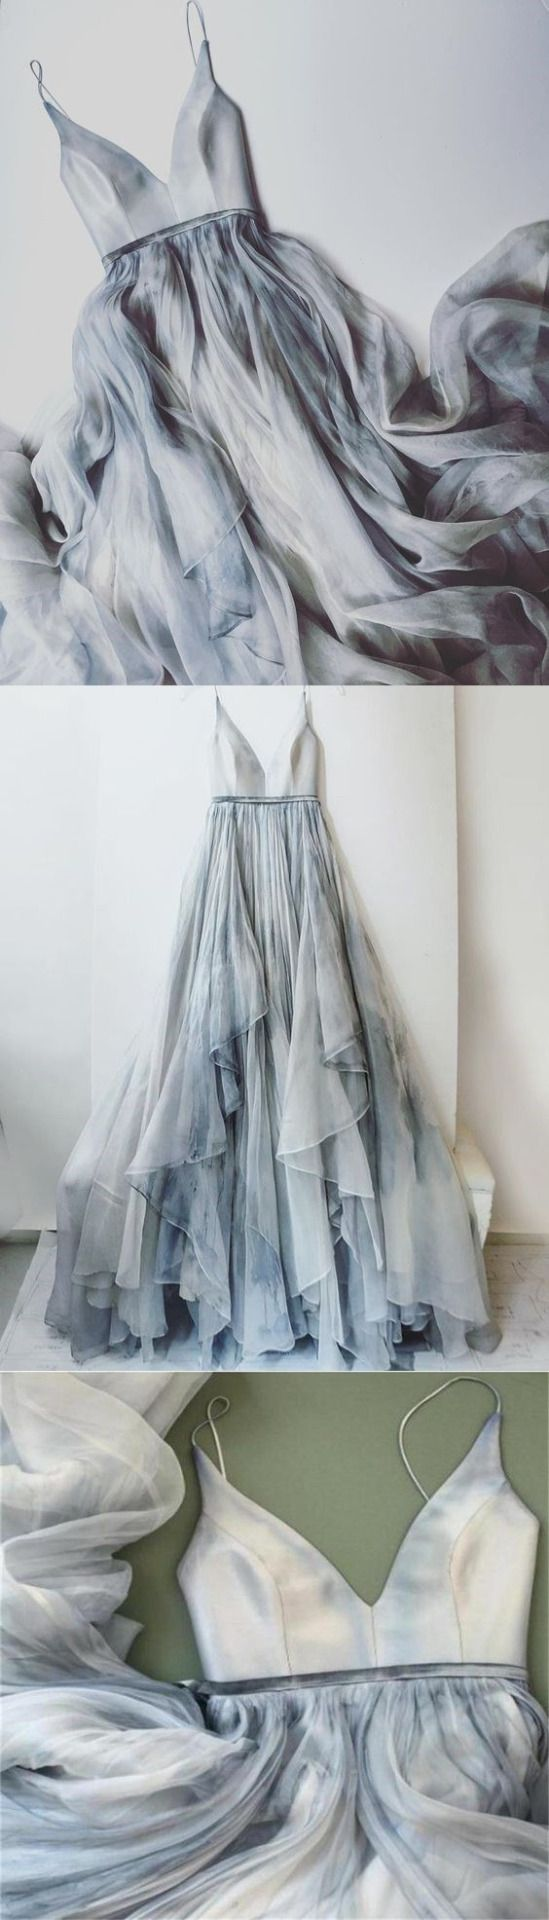 Prom Tumblrog | Boho | Pinterest | Prom, Clothes and Gowns